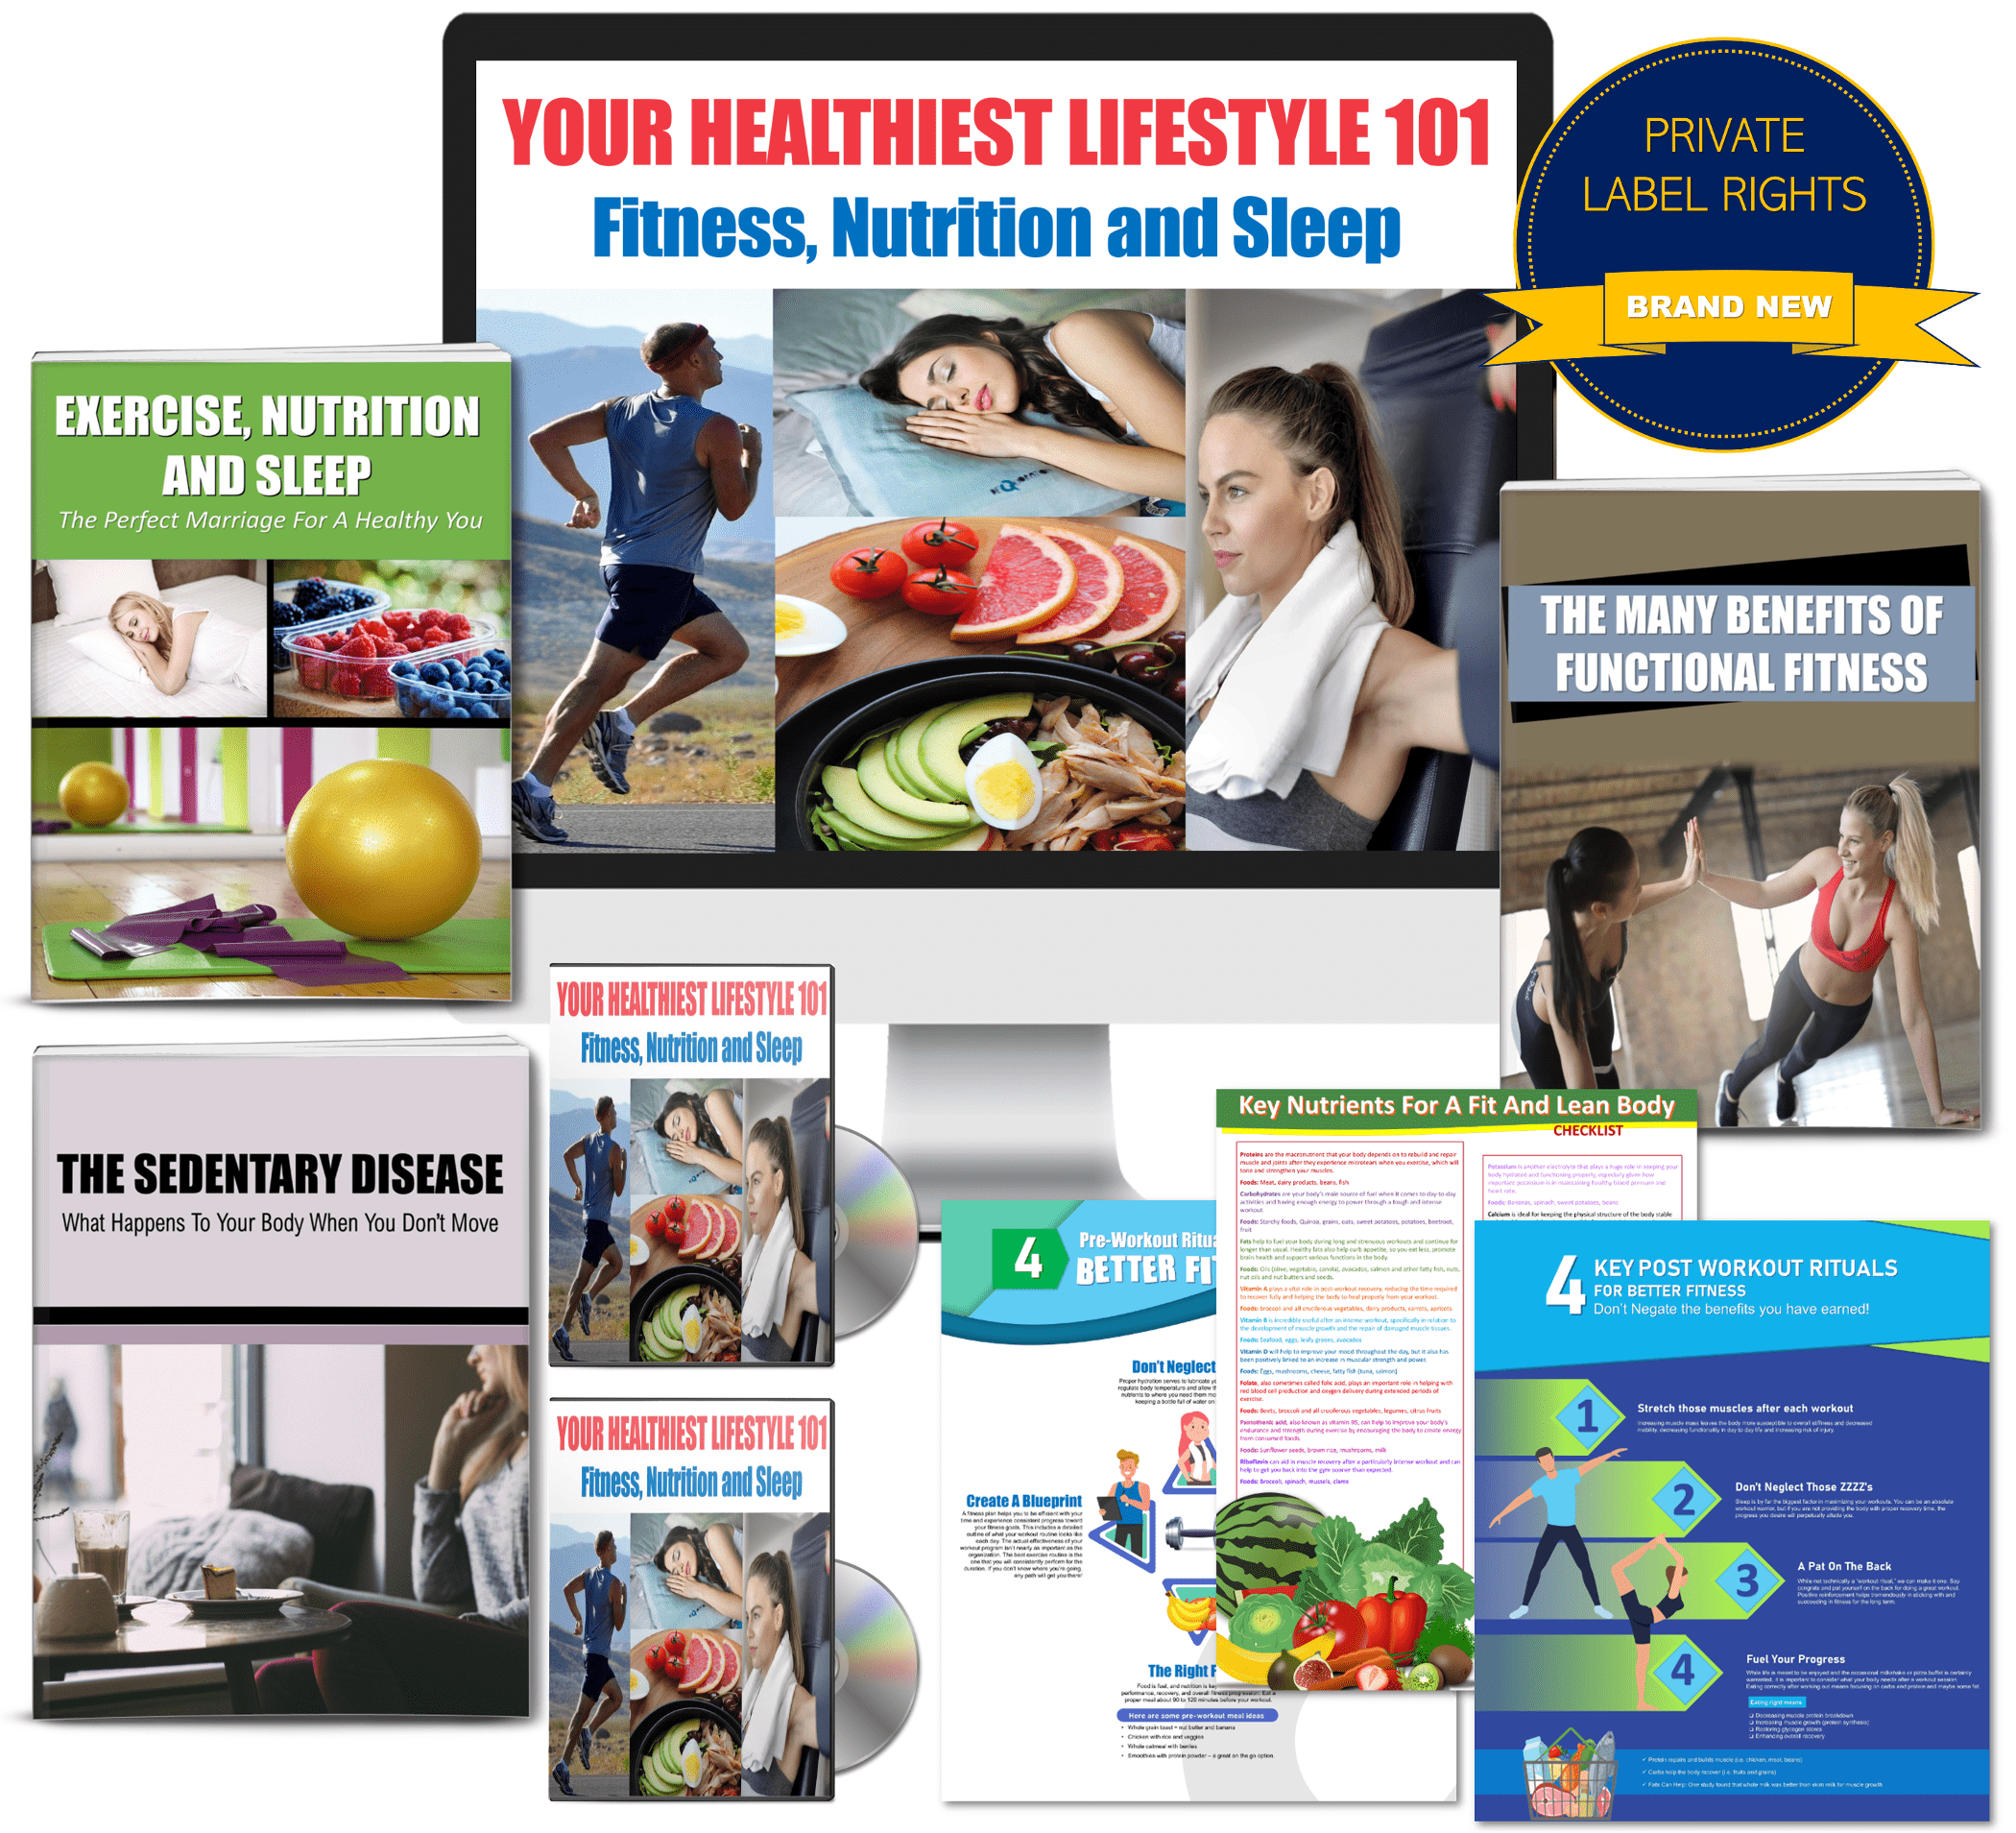 Your Healthiest Lifestyle 101: Fitness, Nutrition And Sleep Giant Content Pack with PLR Rights